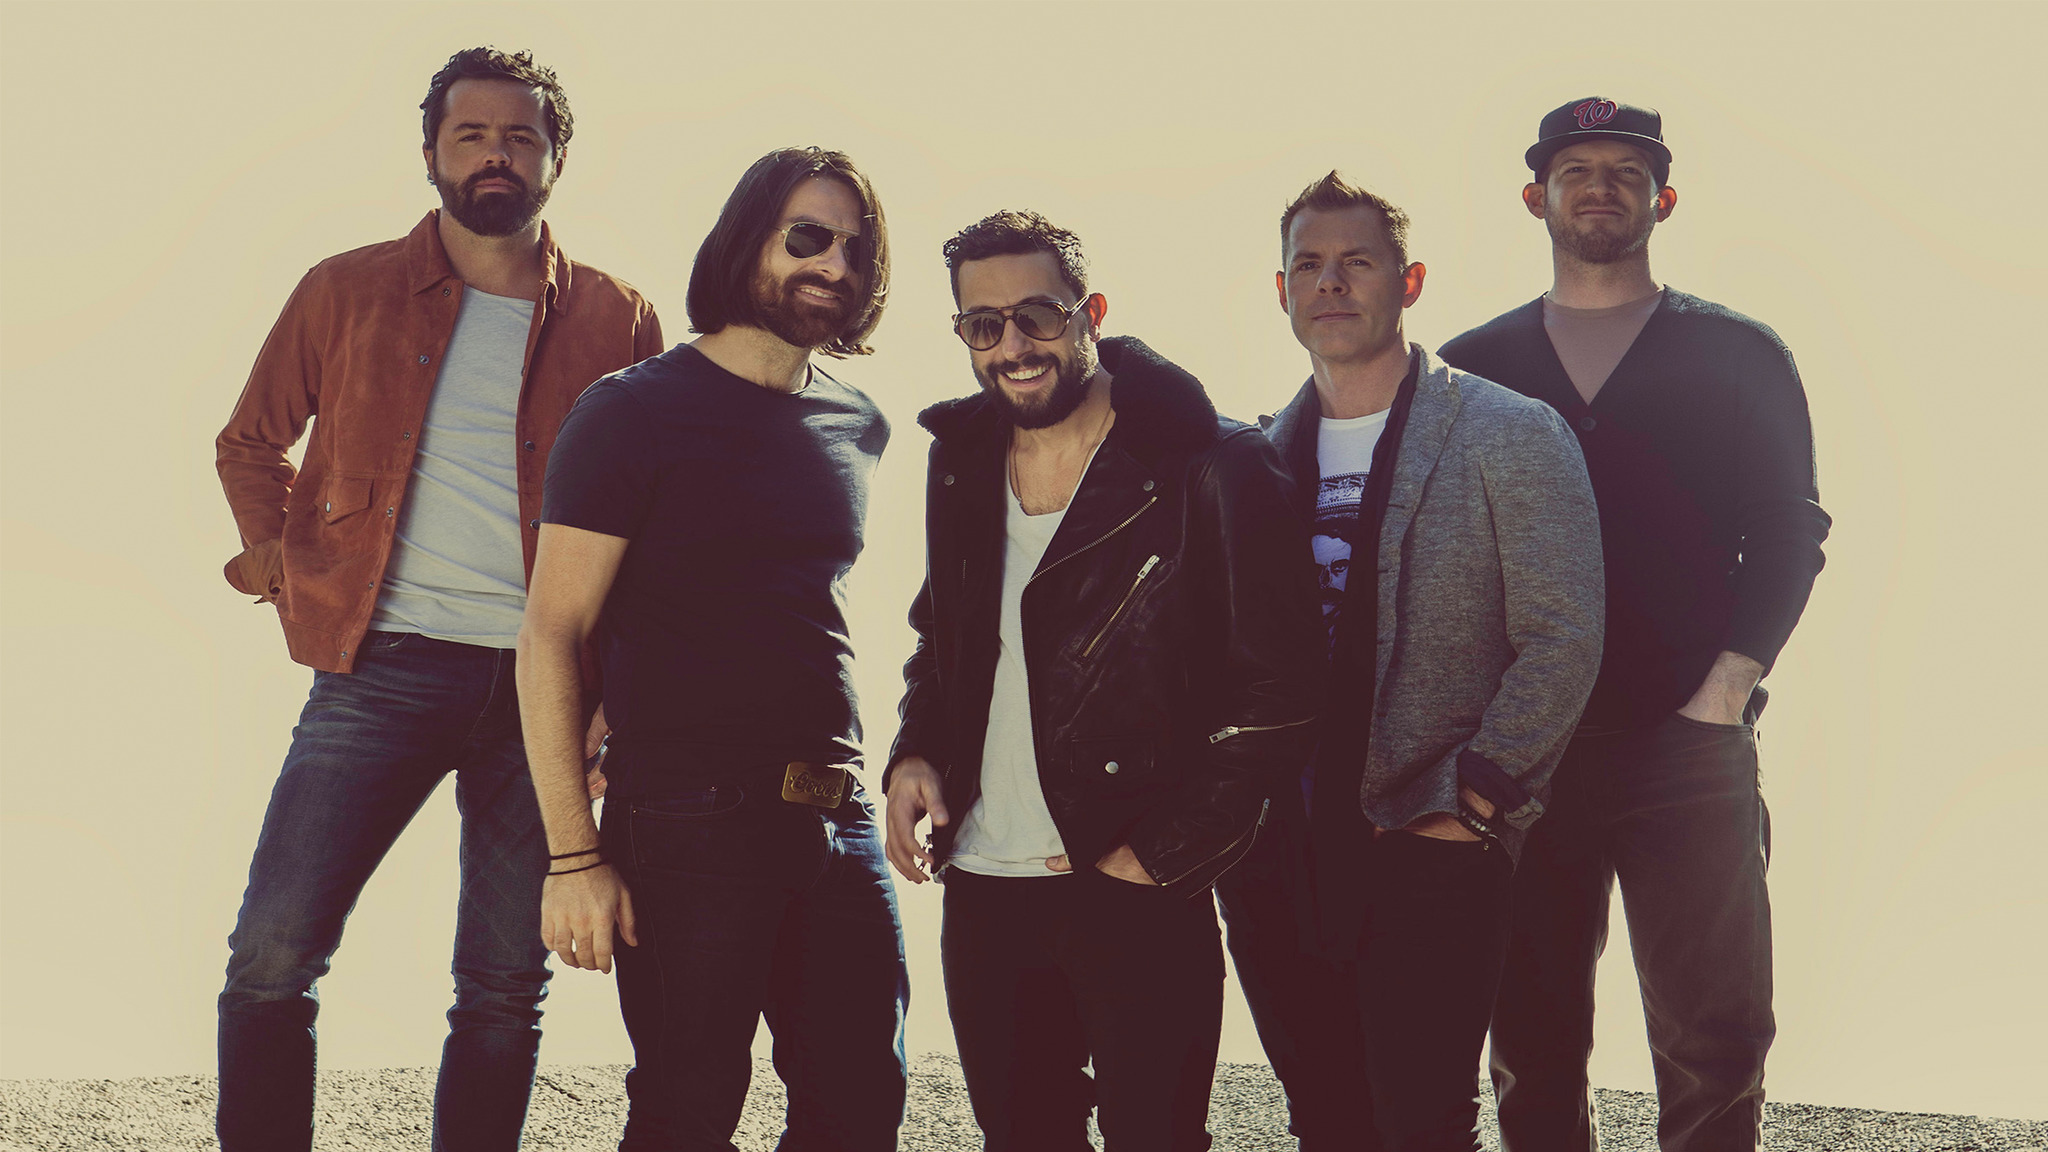 107.7 WGNA Countryfest 2019 Featuring Old Dominion, Big & Rich + more